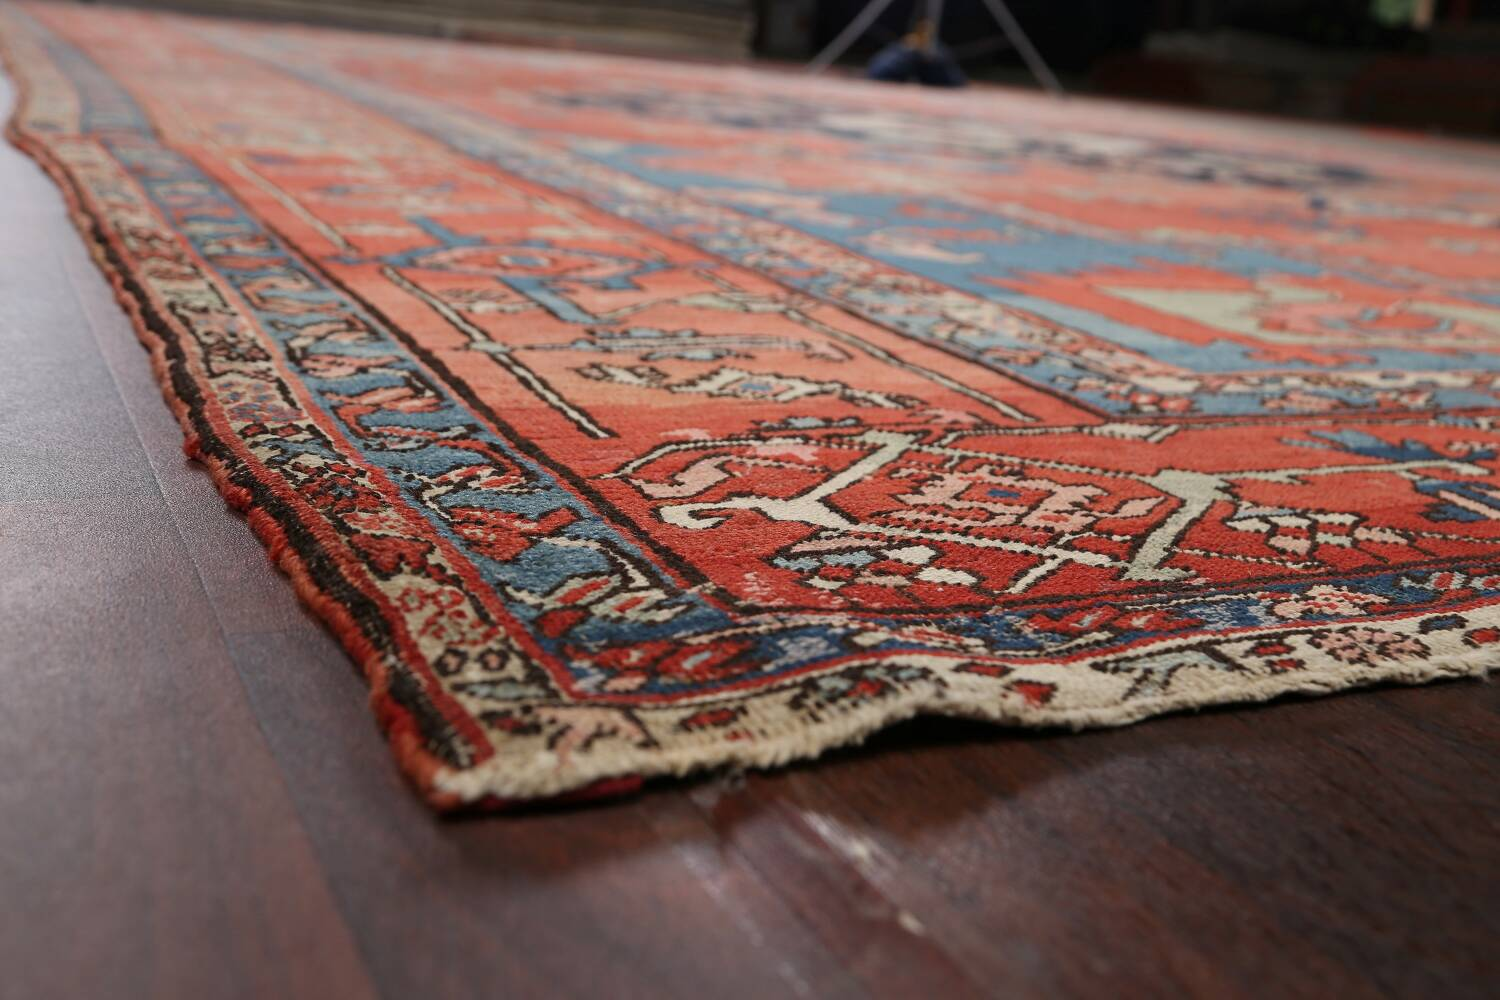 Pre-1900 Antique Heriz Serapi Vegetable Dye Persian Rug 12x16 image 6